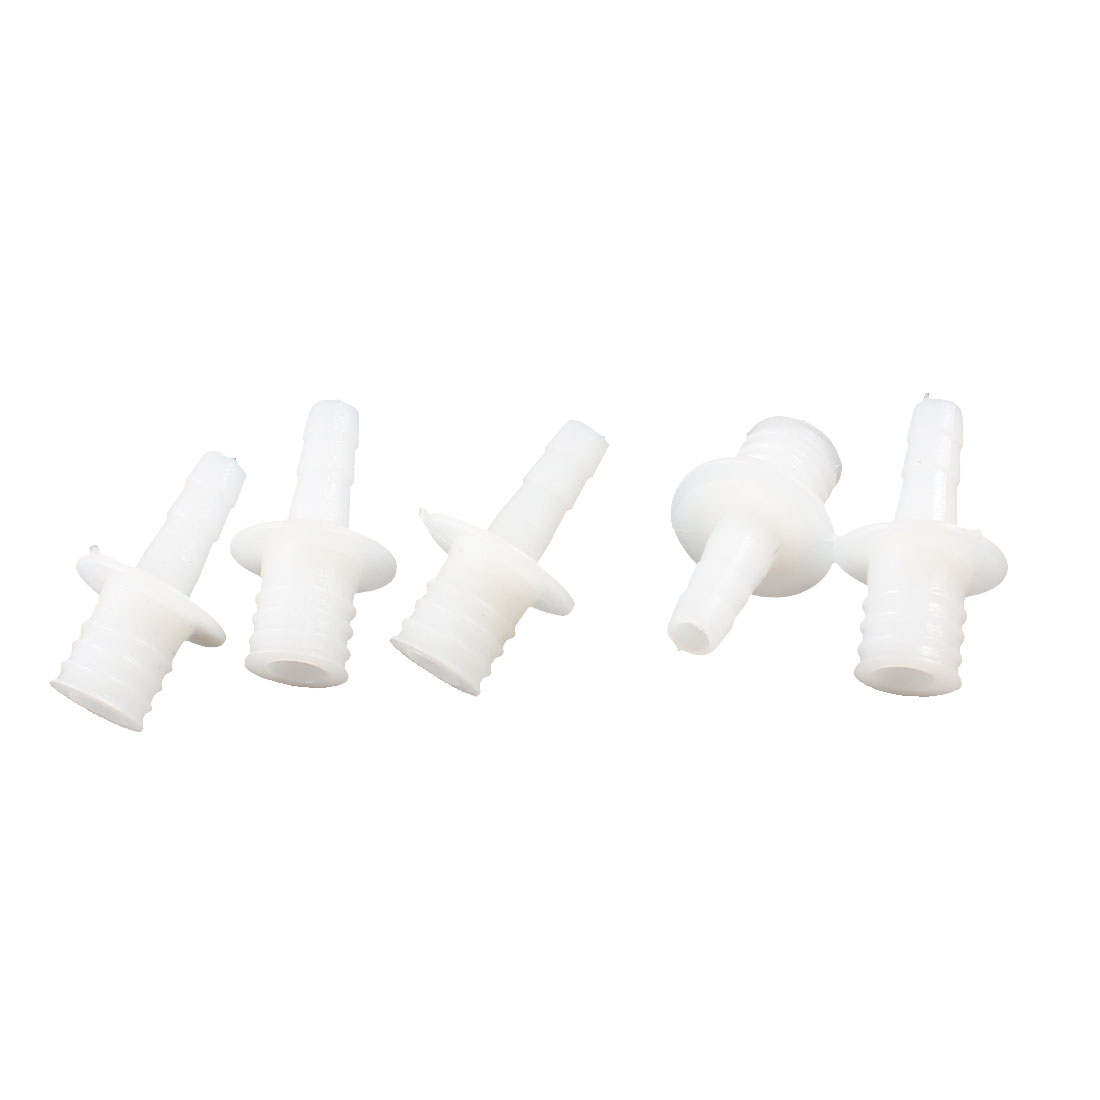 Aquarium Tank Air Pump Plastic 1 Way Airline Tubing Connector White 5 Pcs